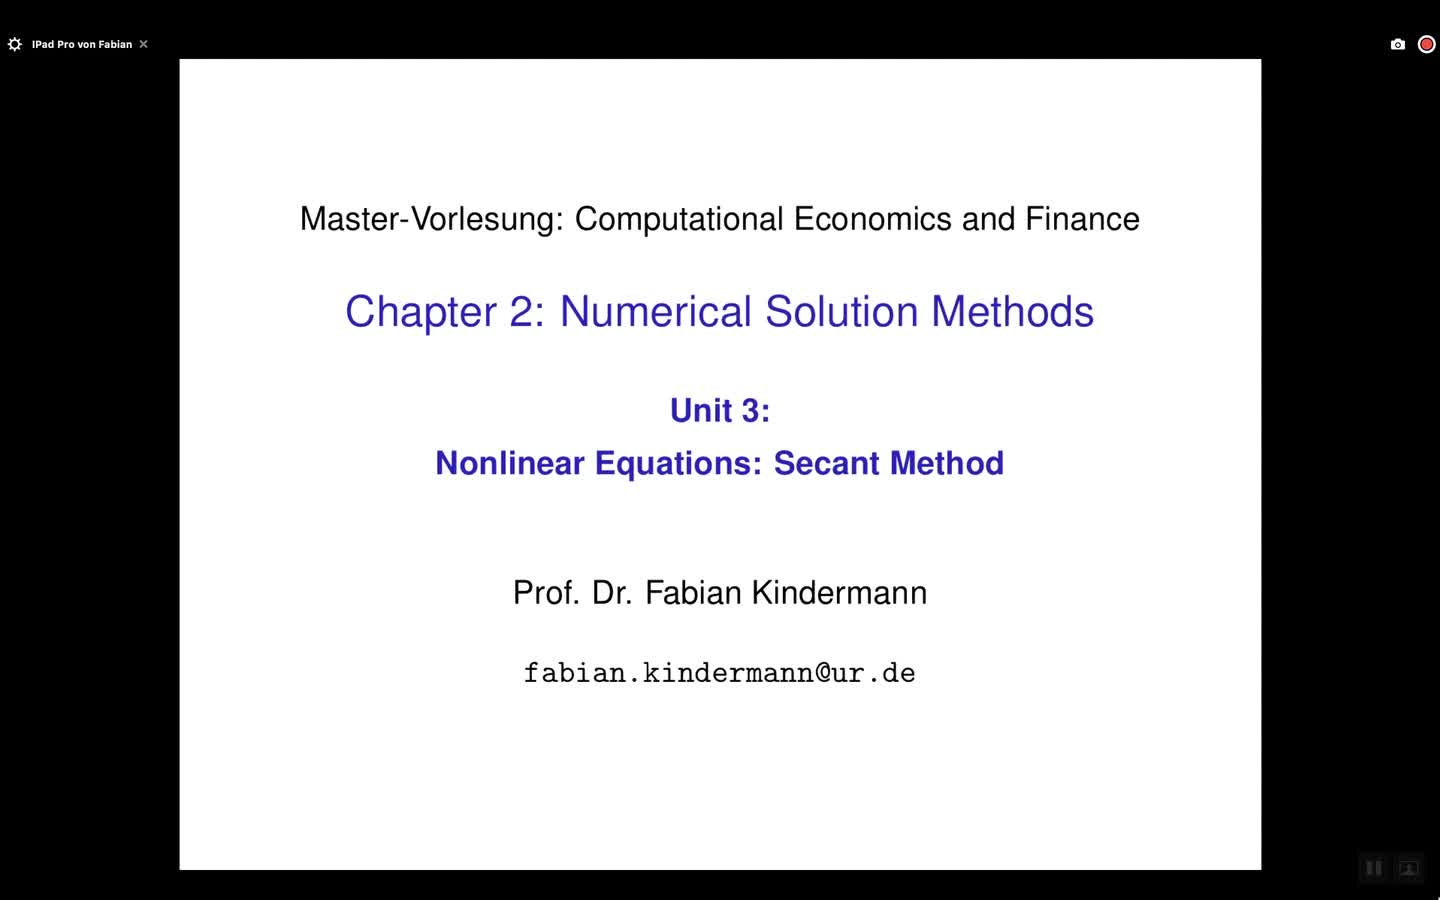 Chapter 2 - Unit 3 - Nonlinear Equations: Secant Method